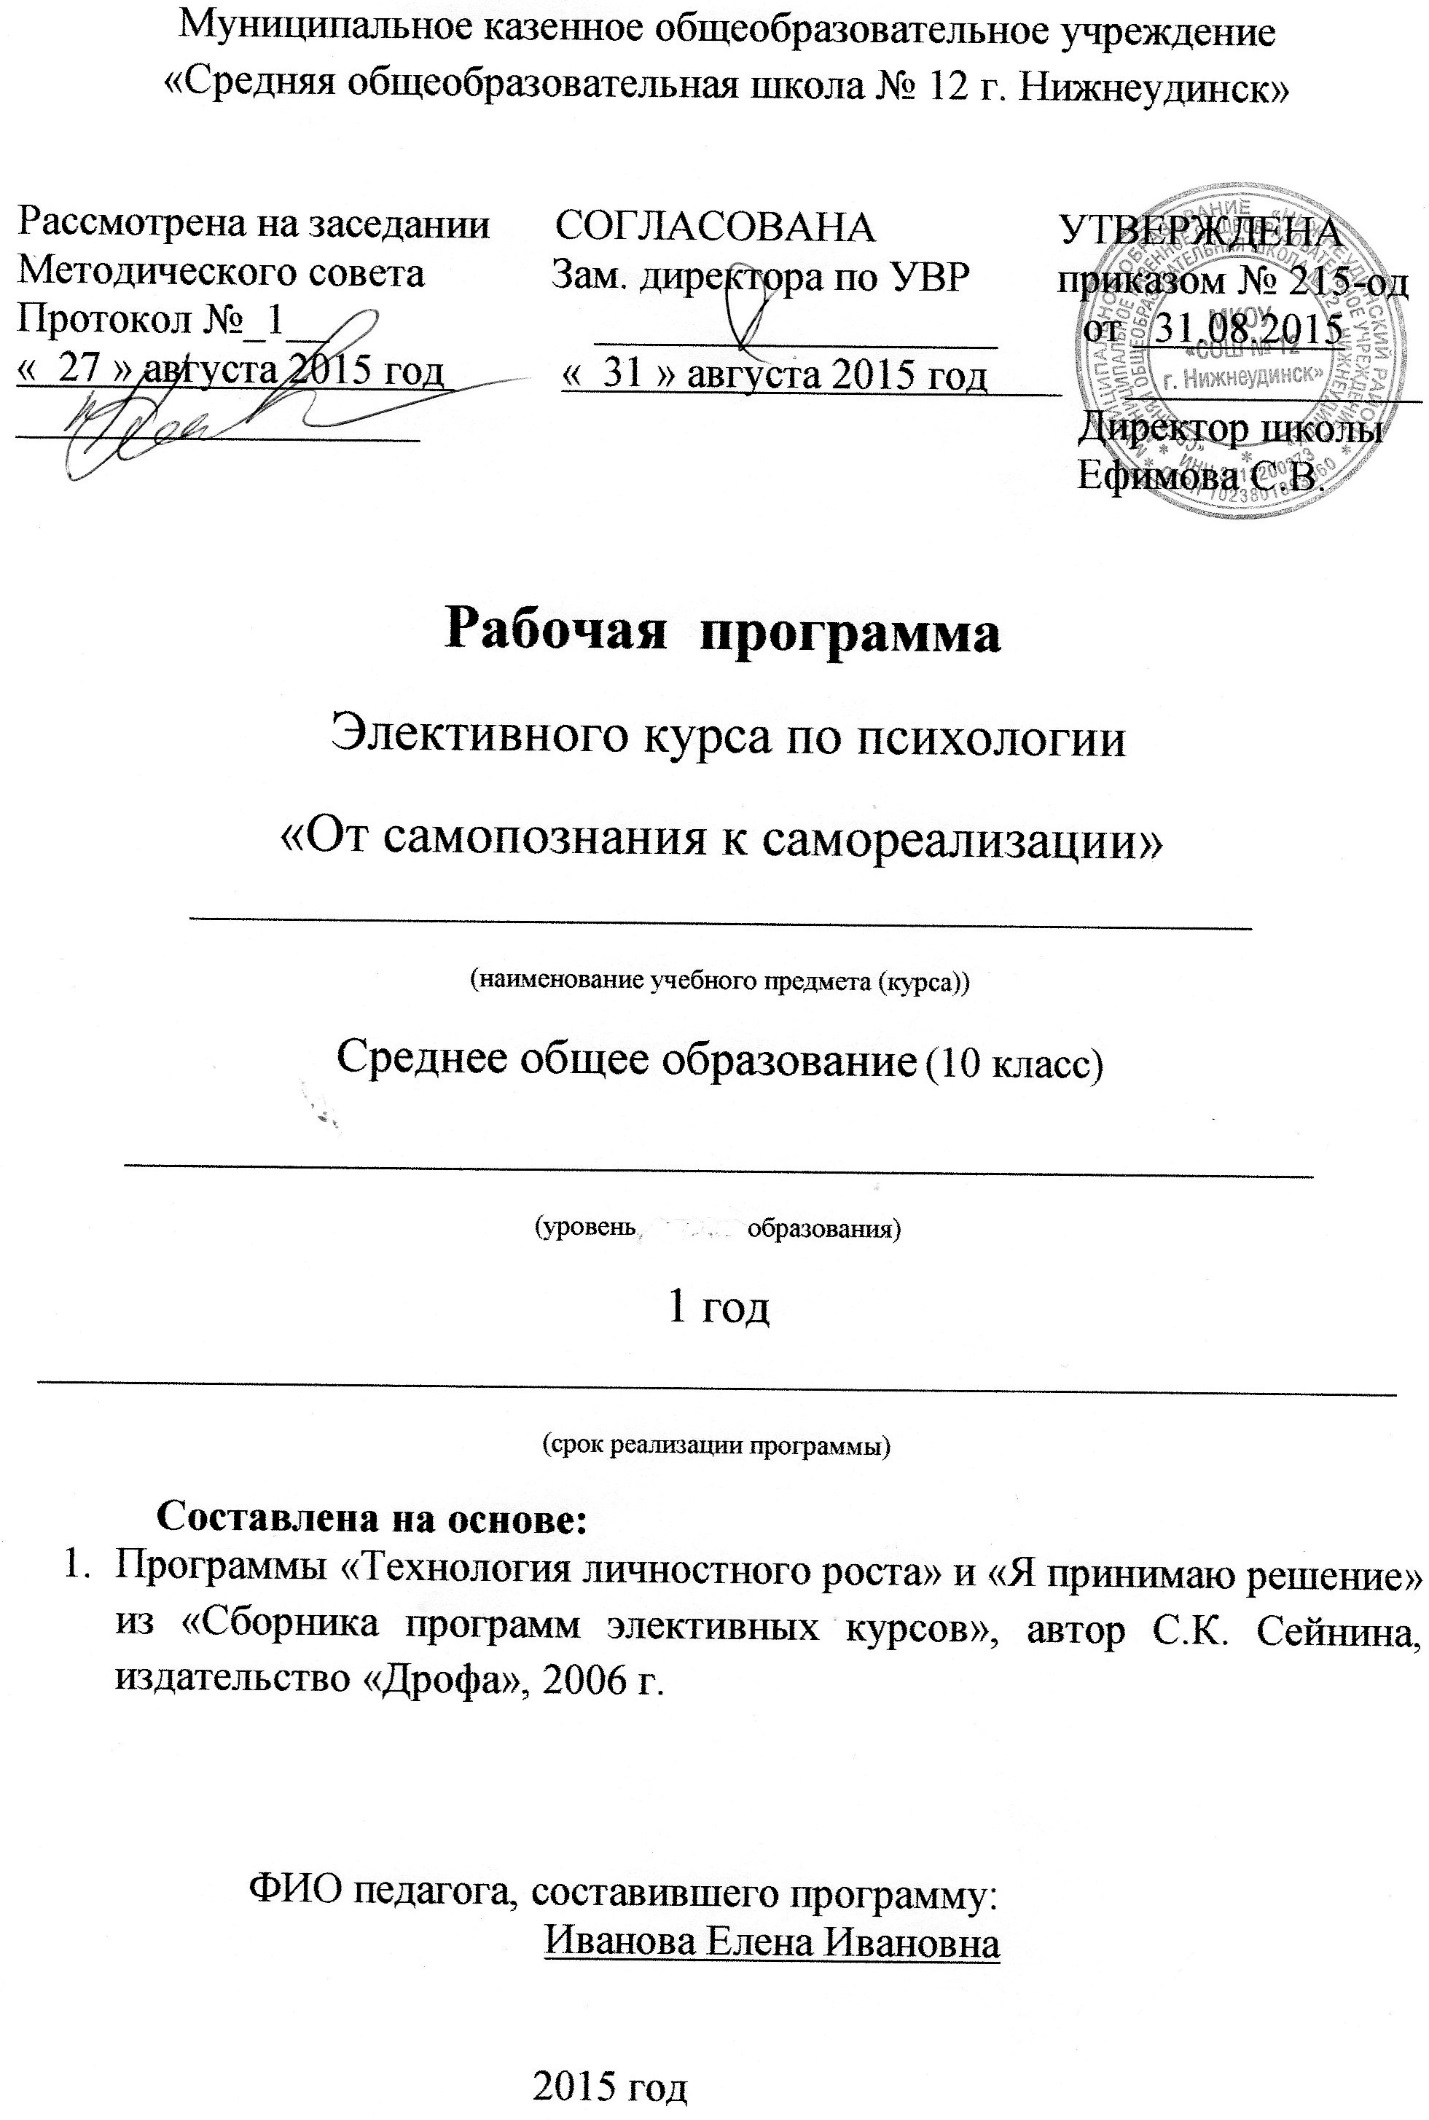 C:\Users\Елена\Pictures\img005.jpg